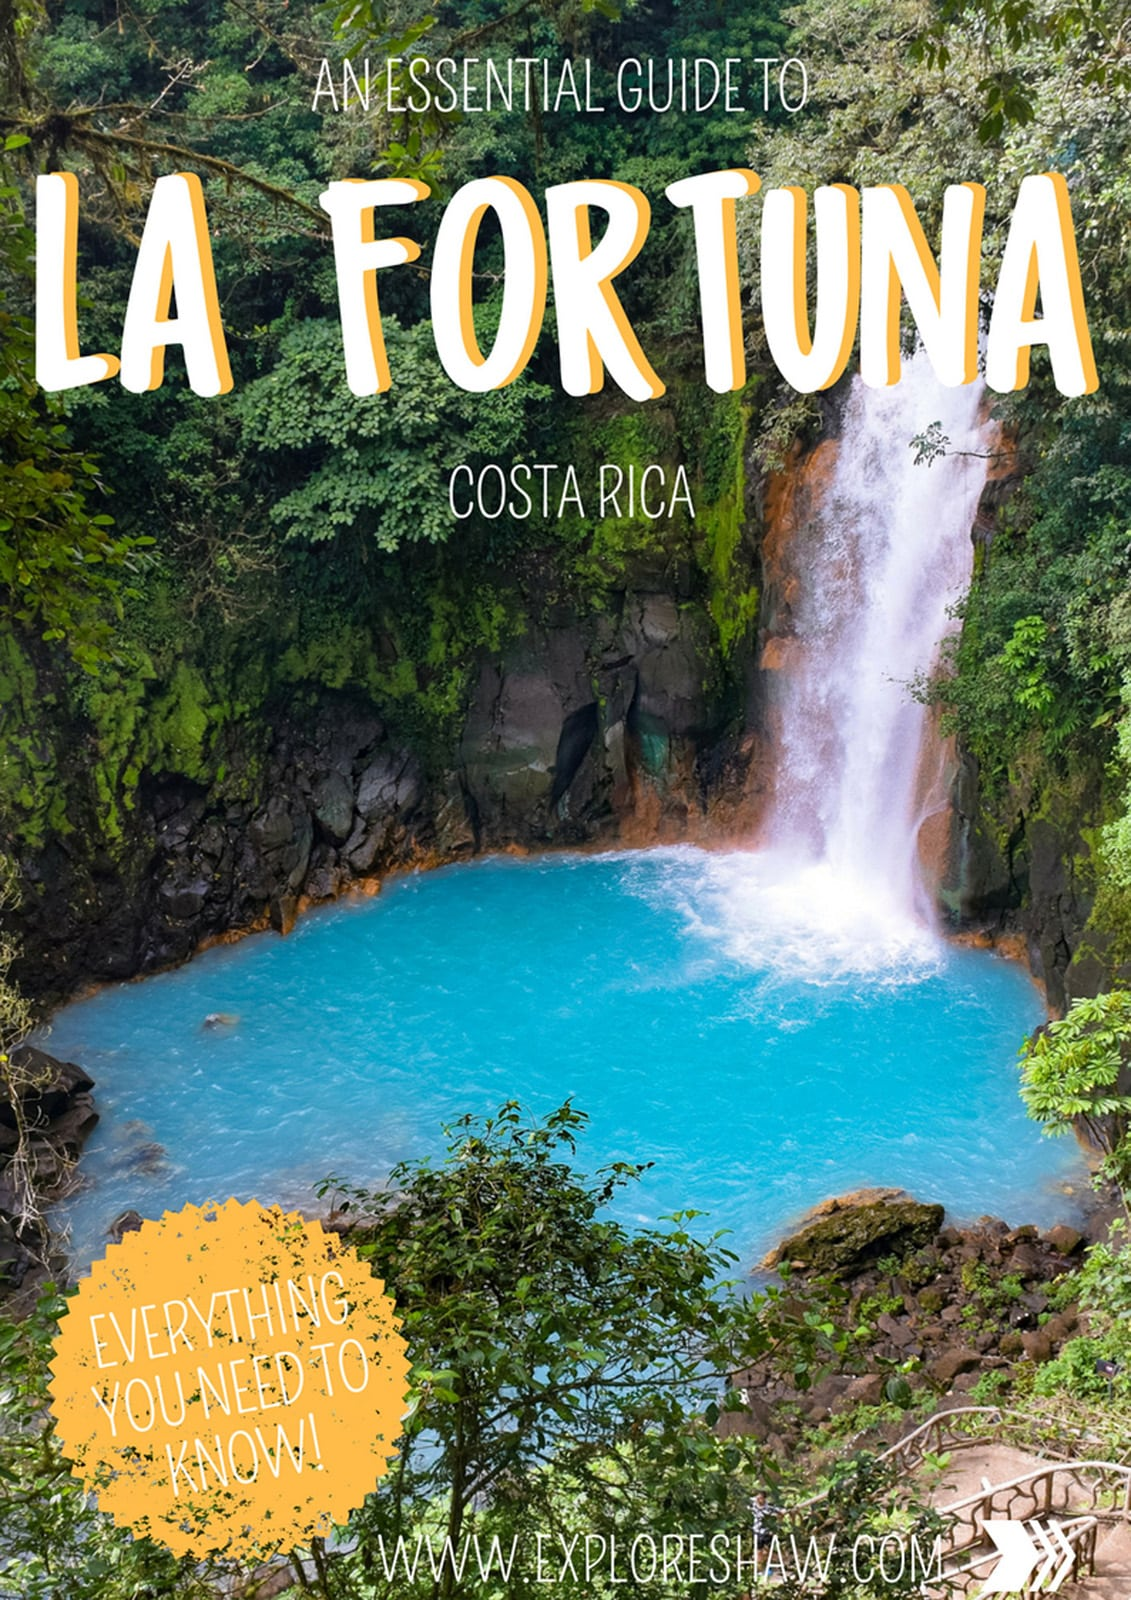 AN ESSENTIAL GUIDE TO LA FORTUNA